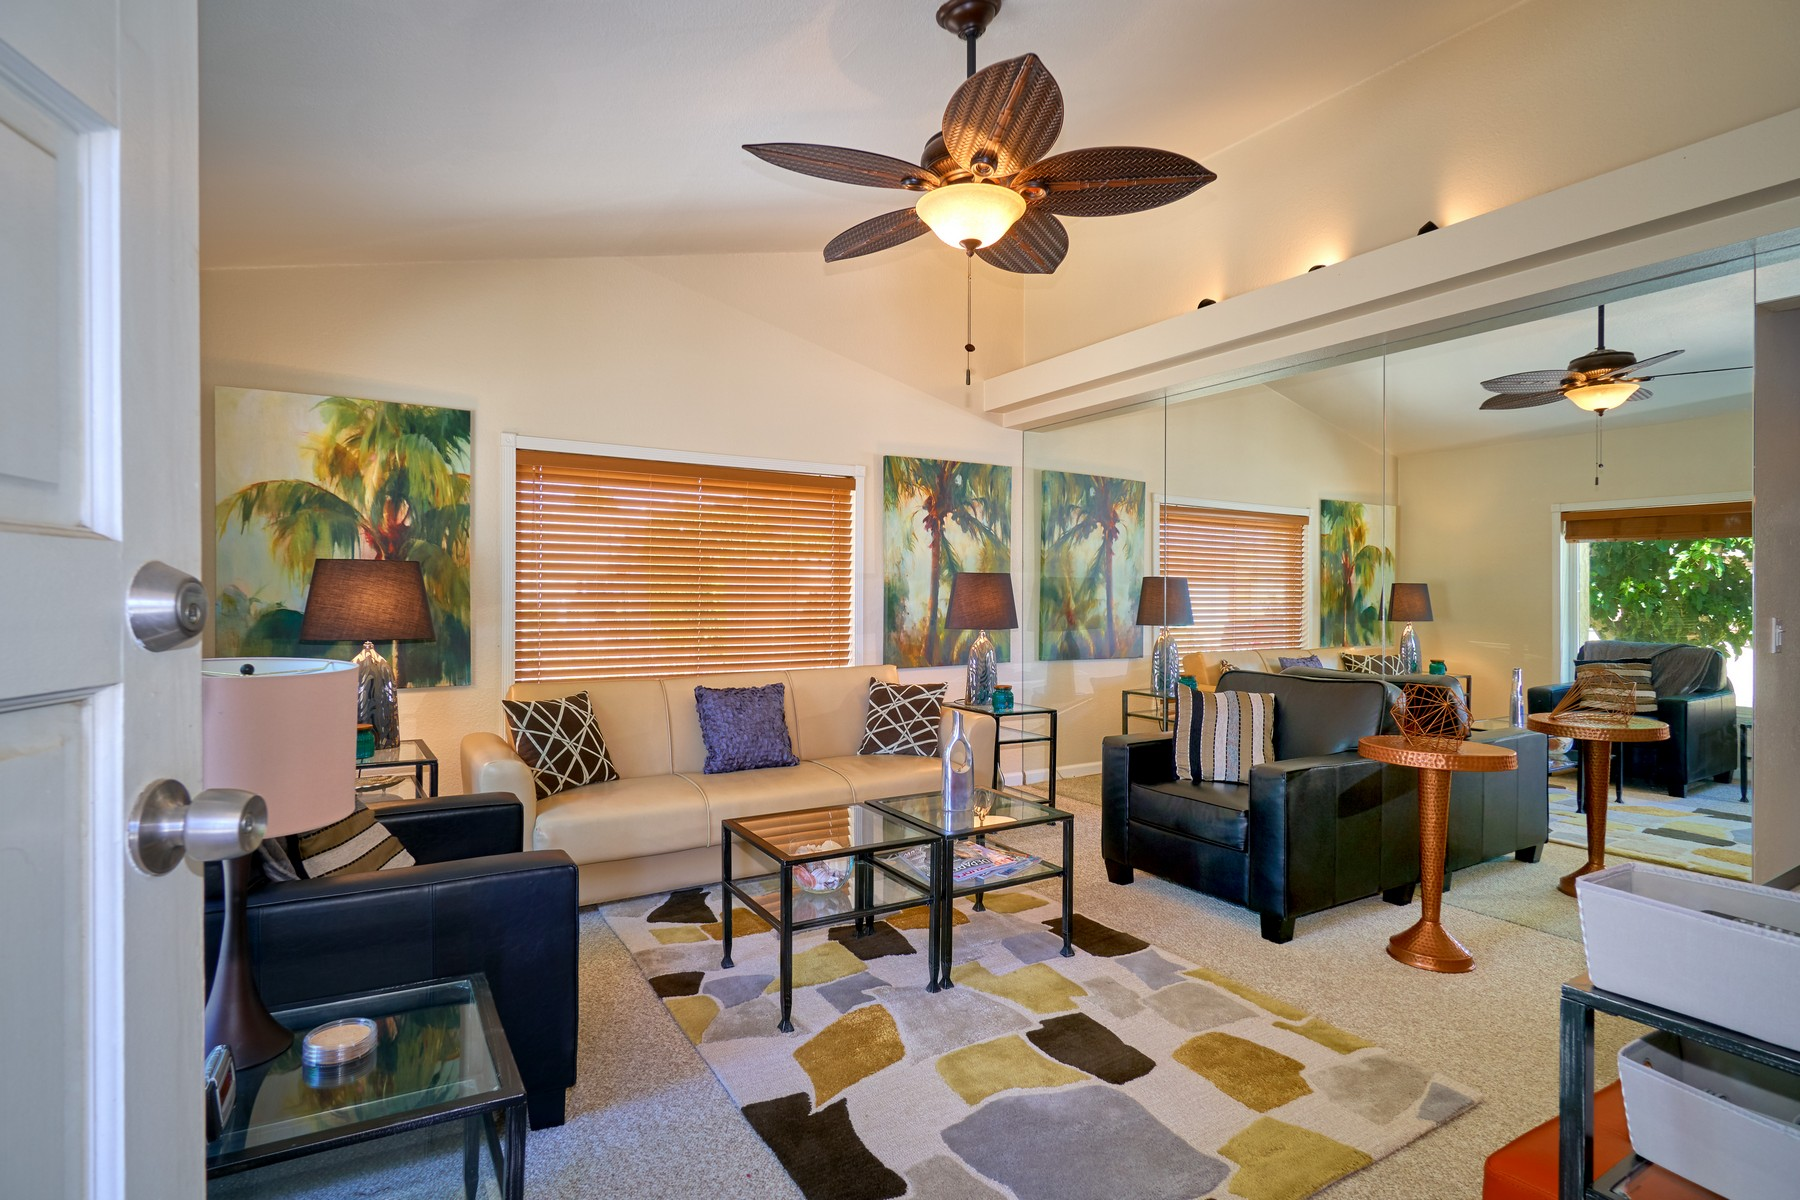 Single Family Home for Sale at 3242 N Mica Dr 3242 N Mica Dr. Palm Springs, California 92262 United States